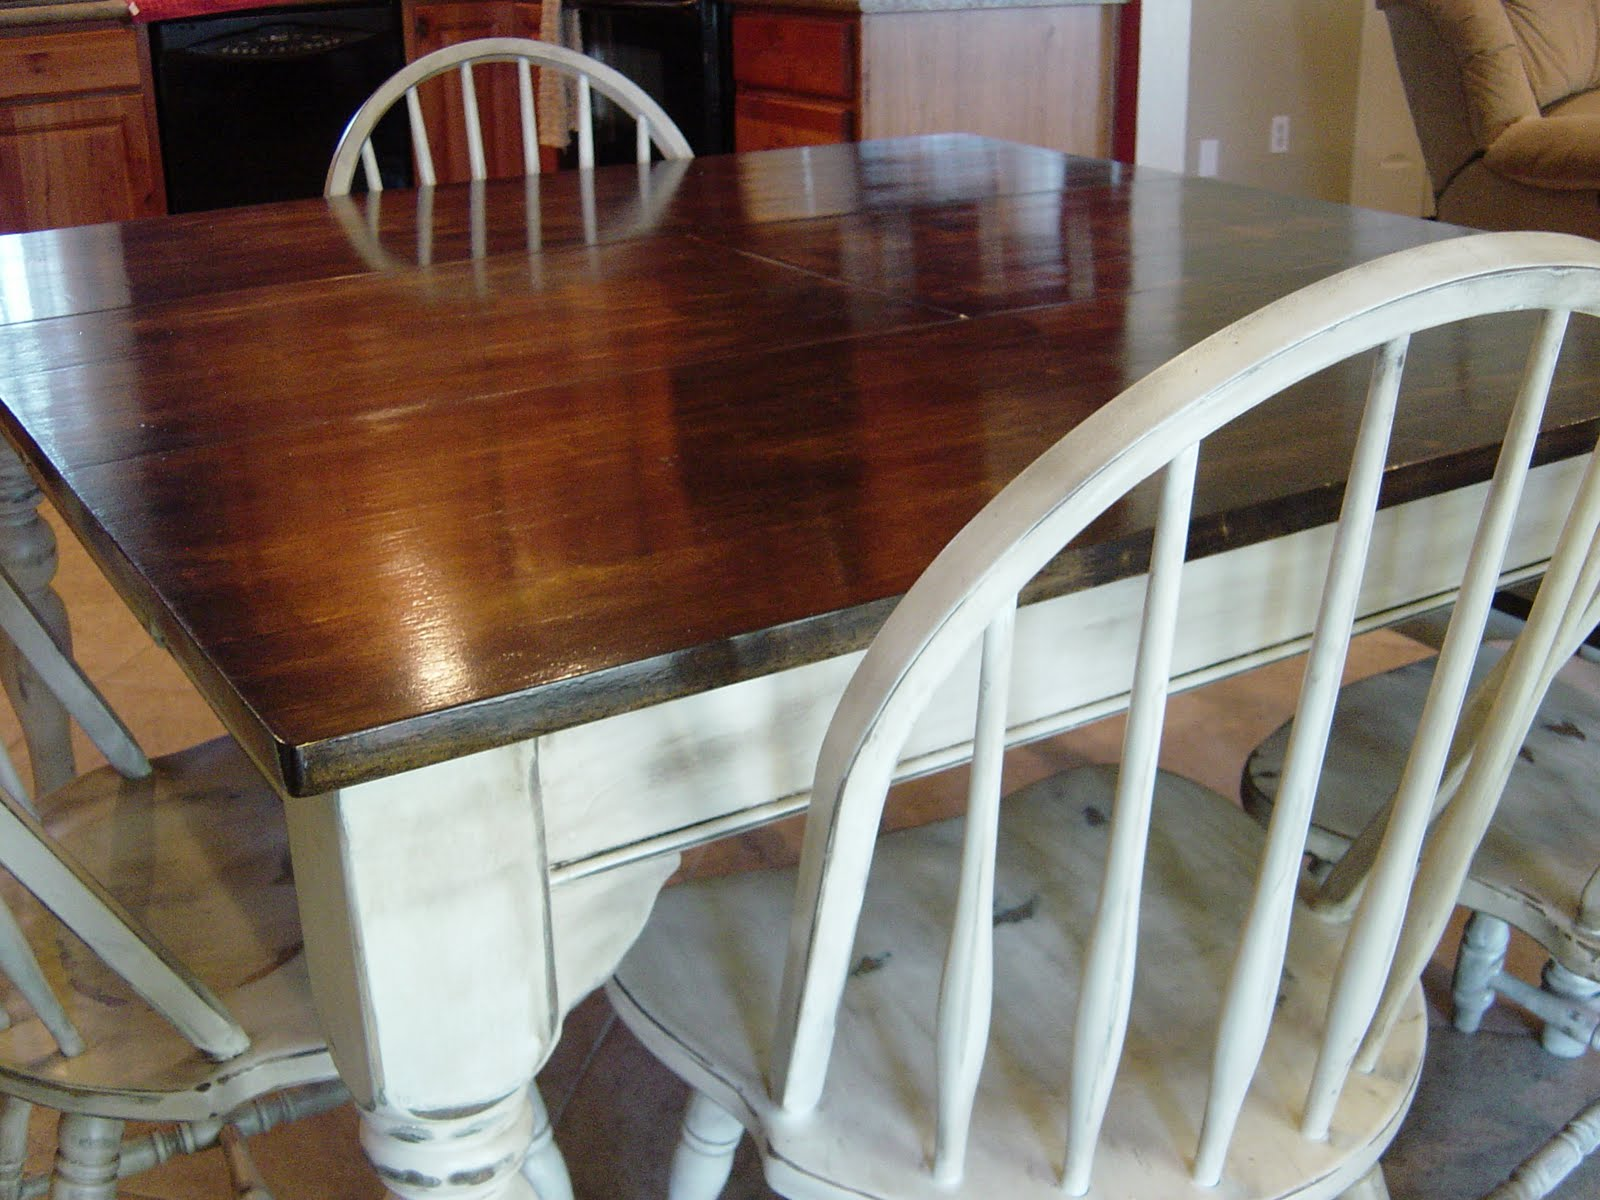 Distressed White Kitchen Table Remodelaholic Kitchen Table Refinished With Distressed Look